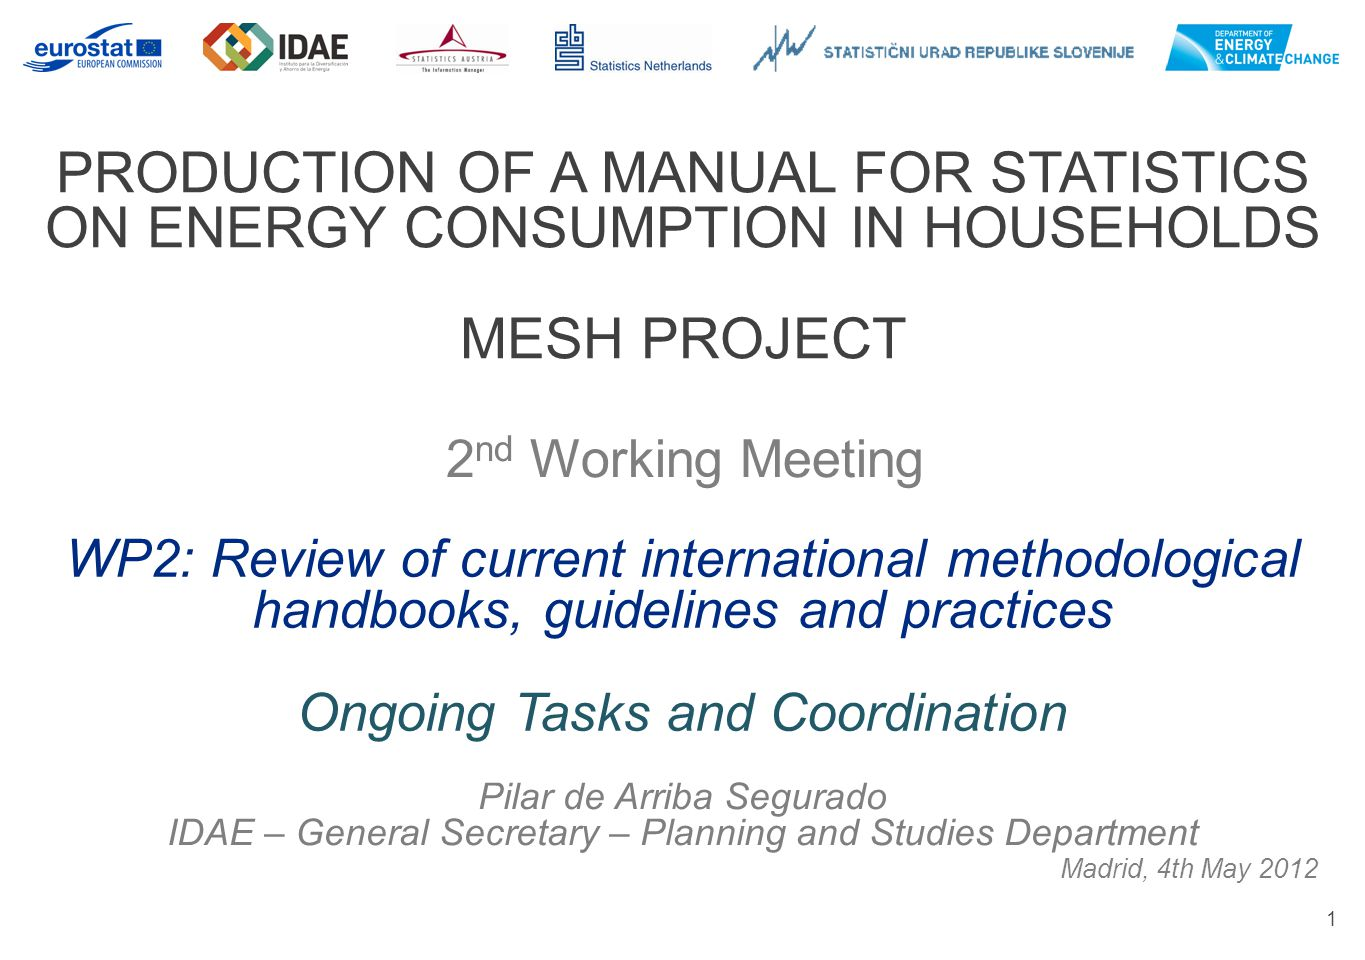 2 Planning and Current Status M ESH PROJECT : P RODUCTION OF A M ANUAL FOR S TATISTICS ON E NERGY C ONSUMPTION IN H OUSEHOLDS Main actions focused on coordination and communication Preliminary activities within WP2